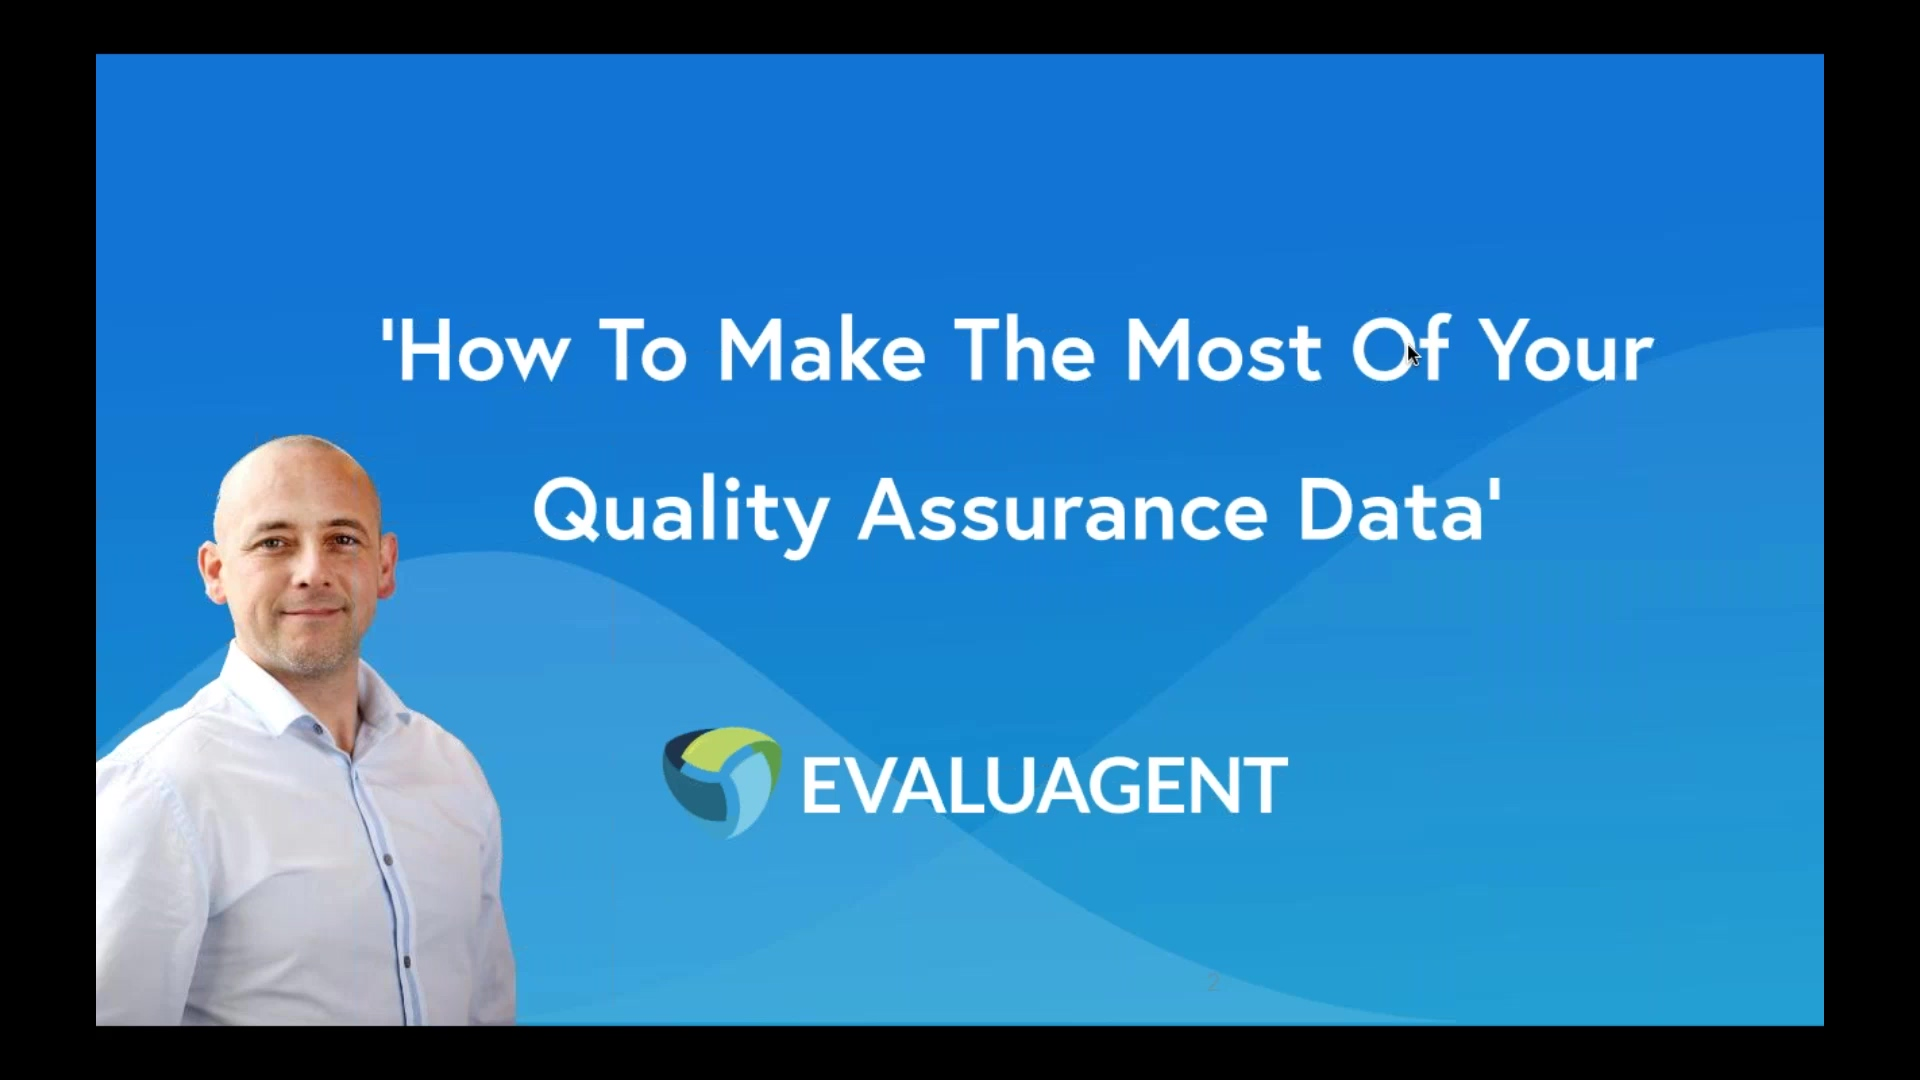 How To Make The Most Of Your Quality Assurance Data